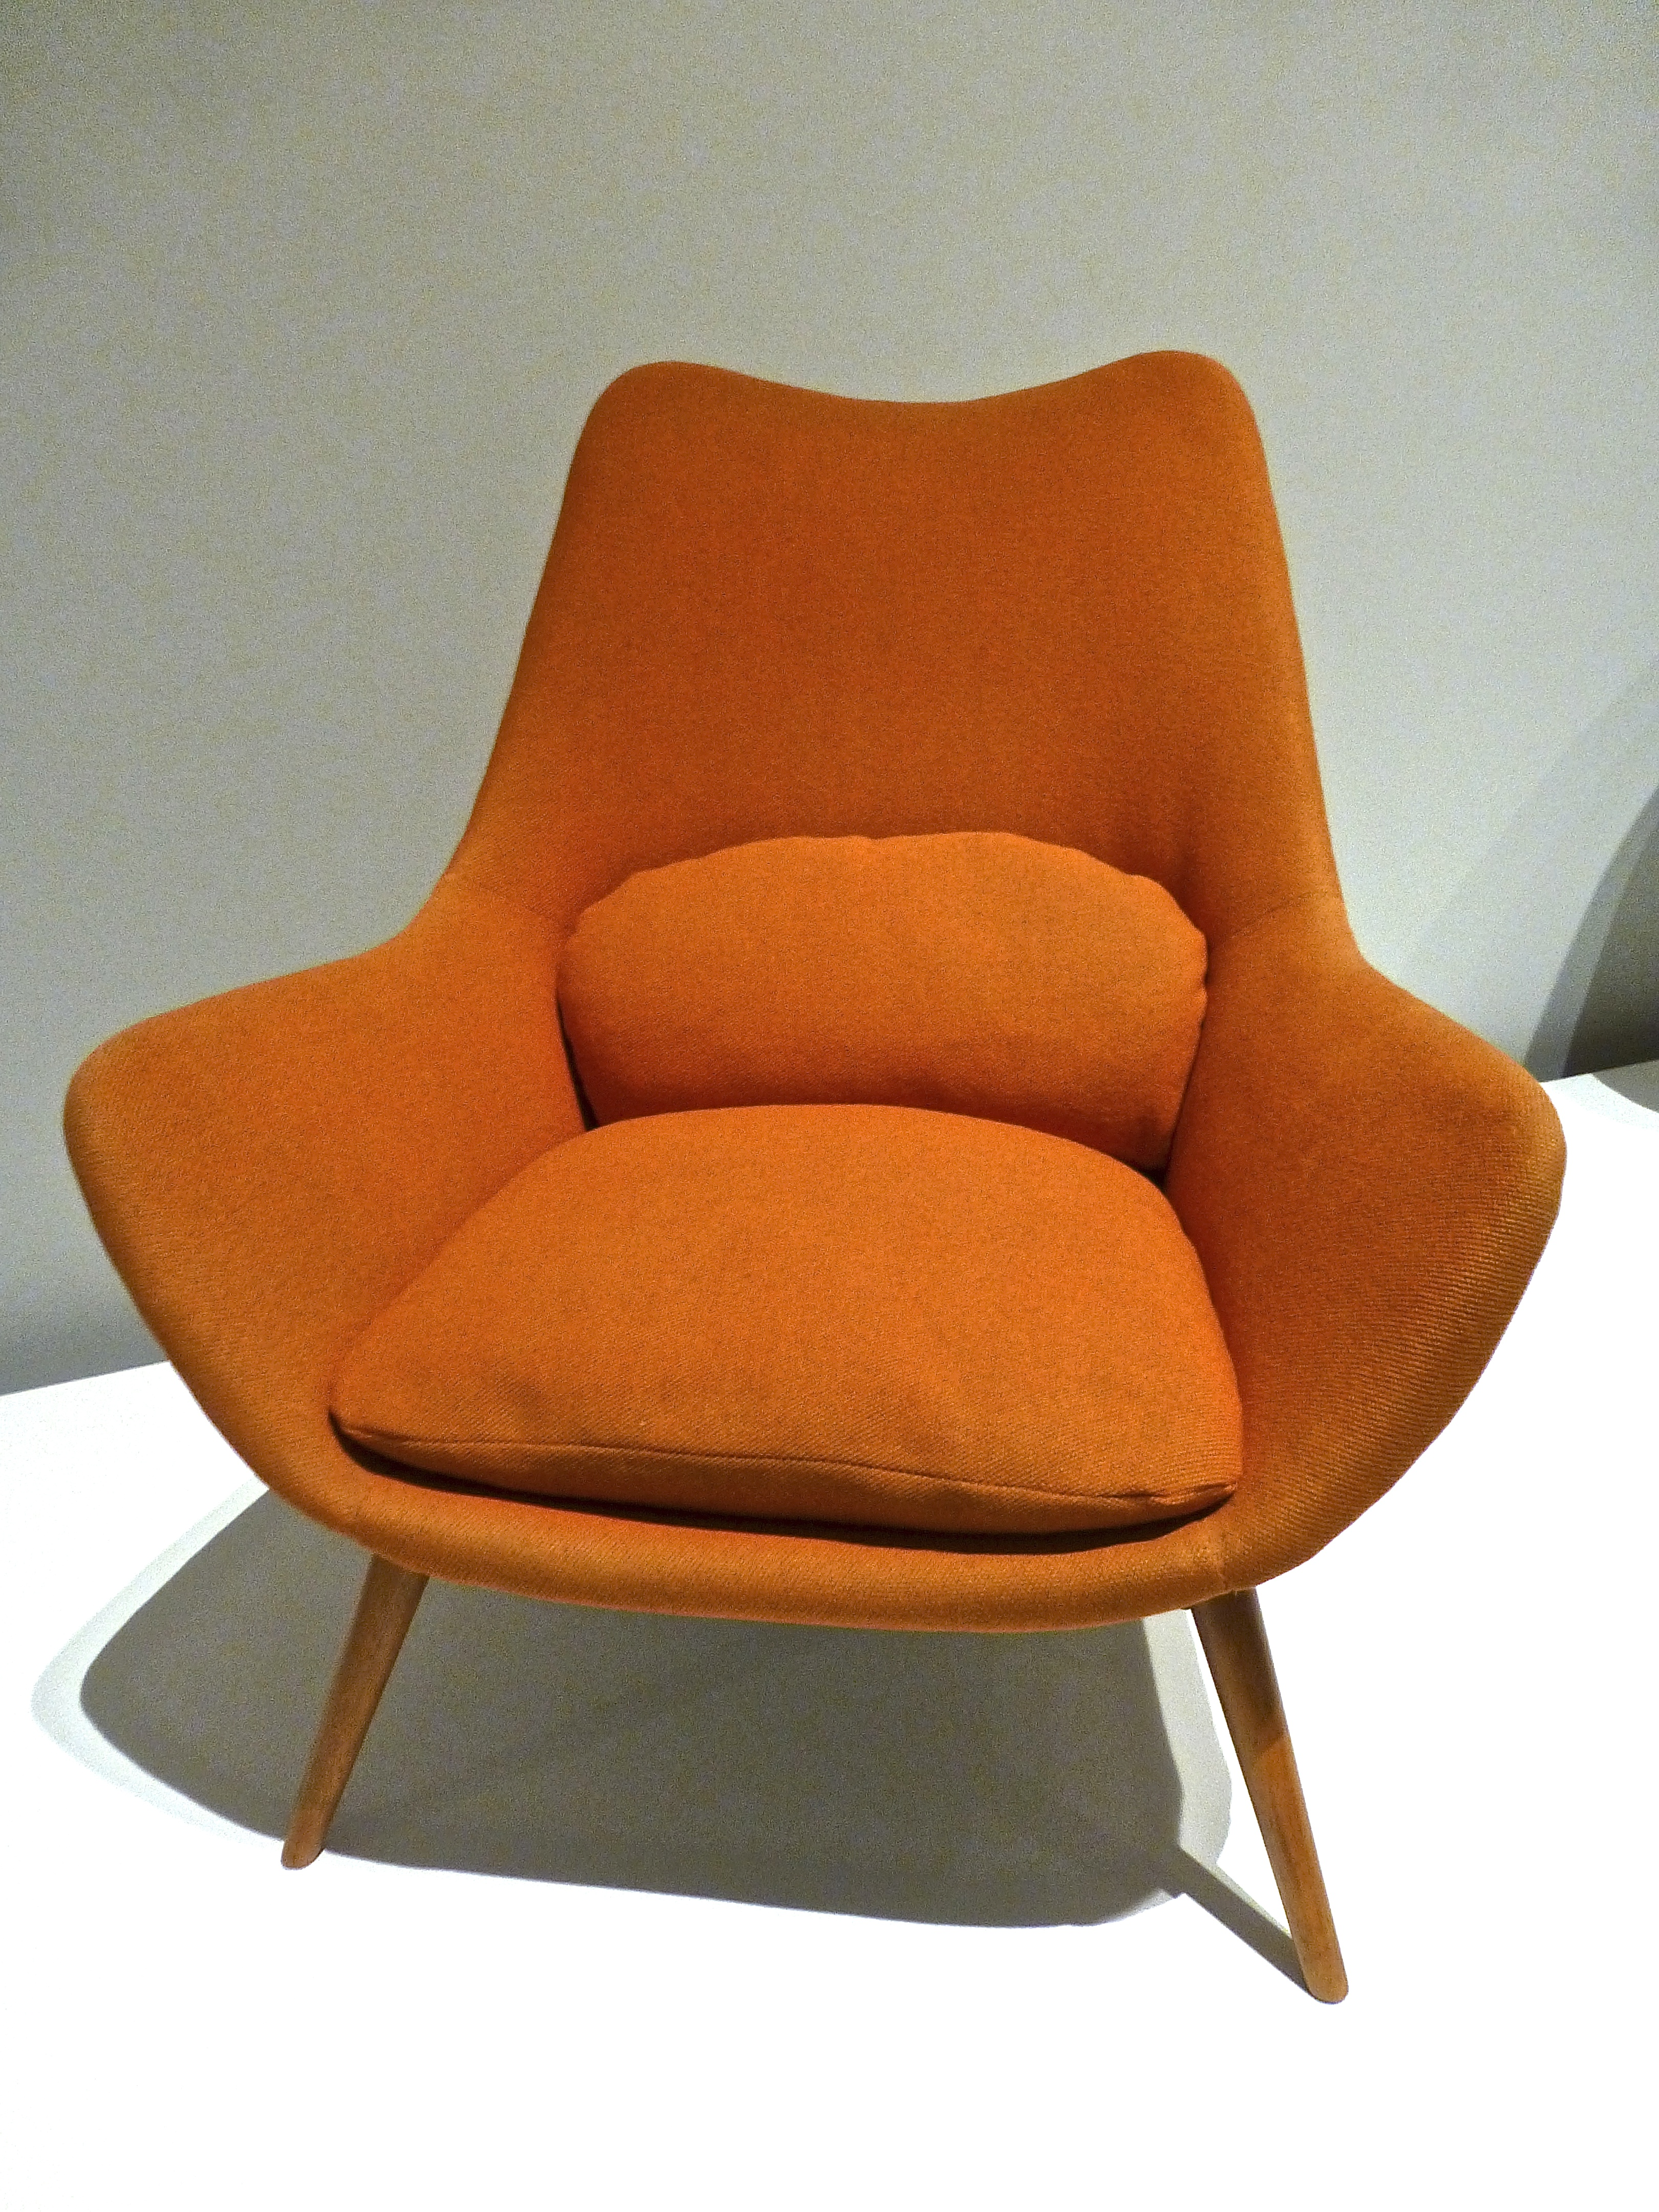 E2 Elastic Suspension Chair by Grant Featherston, 1954